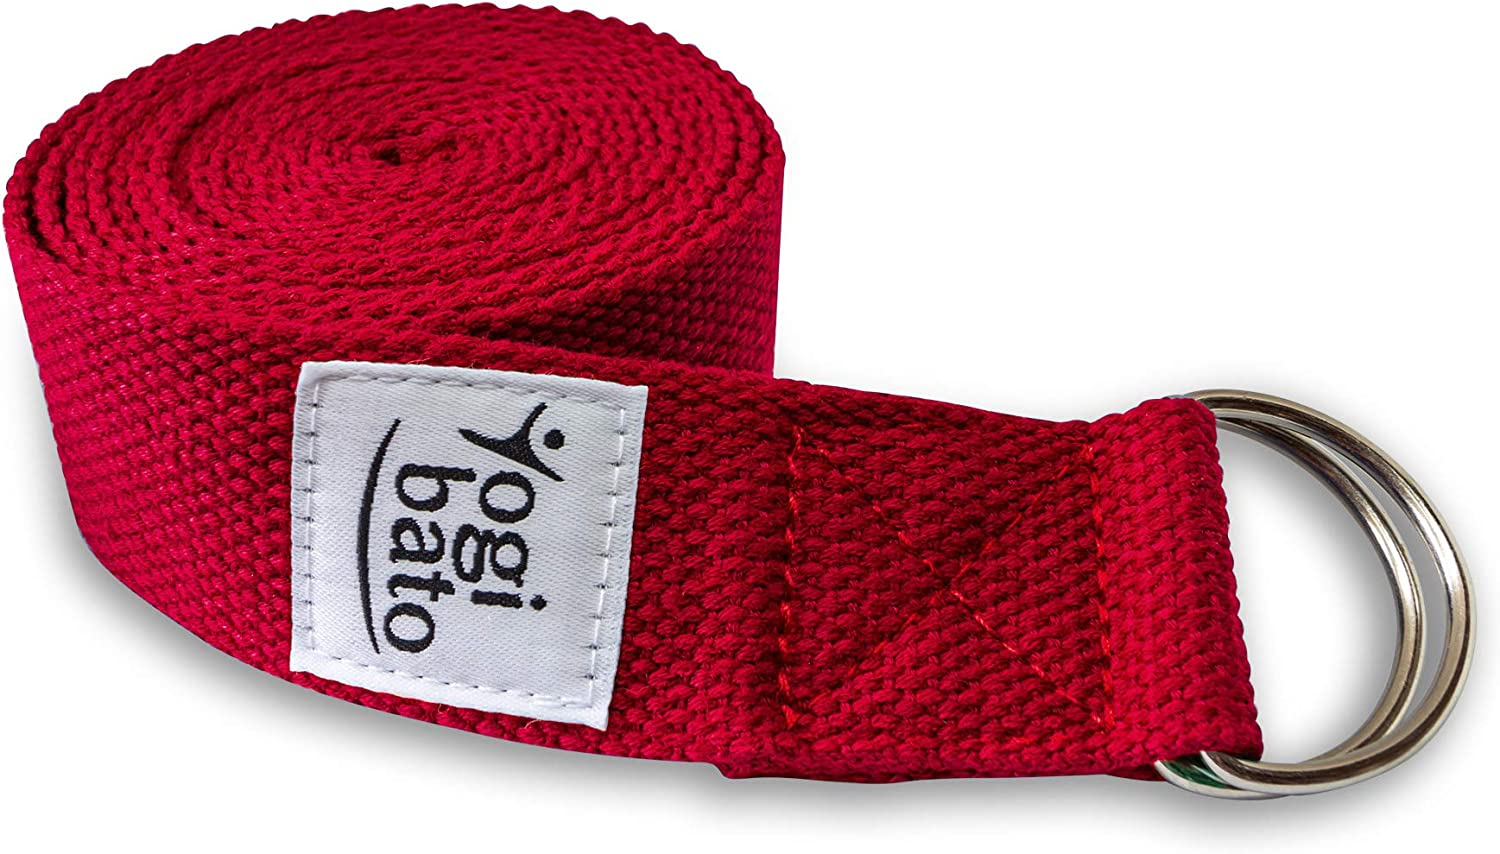 Yogibato Yoga Strap 100/% cotton |240 x 3.8 cm|8 ft x 1.5 in| D-Ring Buckle Belt and Physical Therapy Pilates Band for Stretching Adjustable Yoga Belt